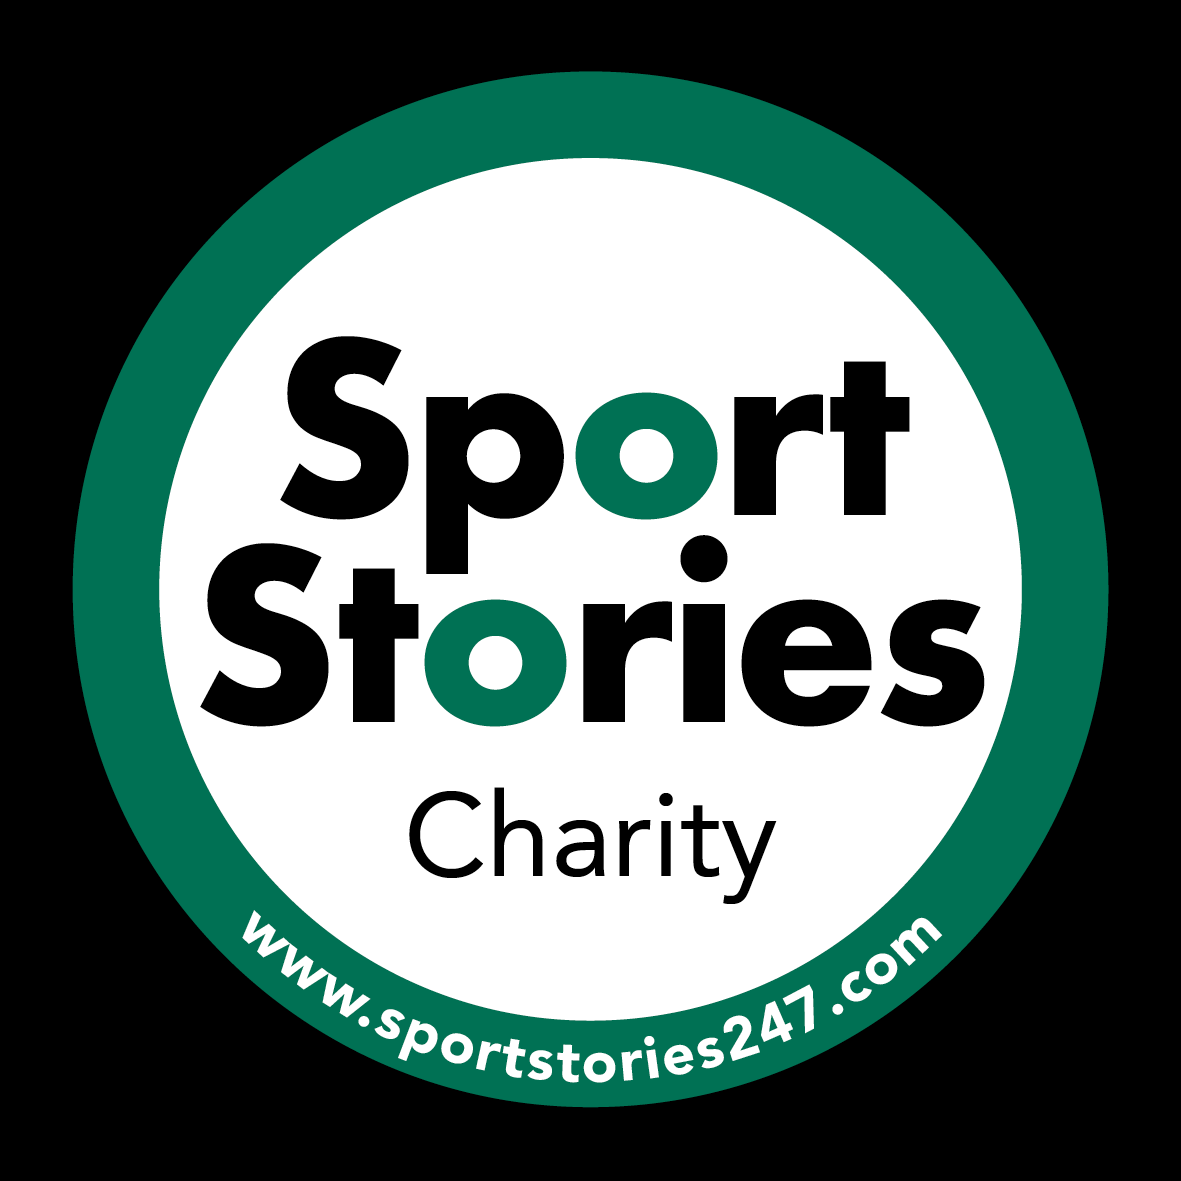 Sport Stories charity